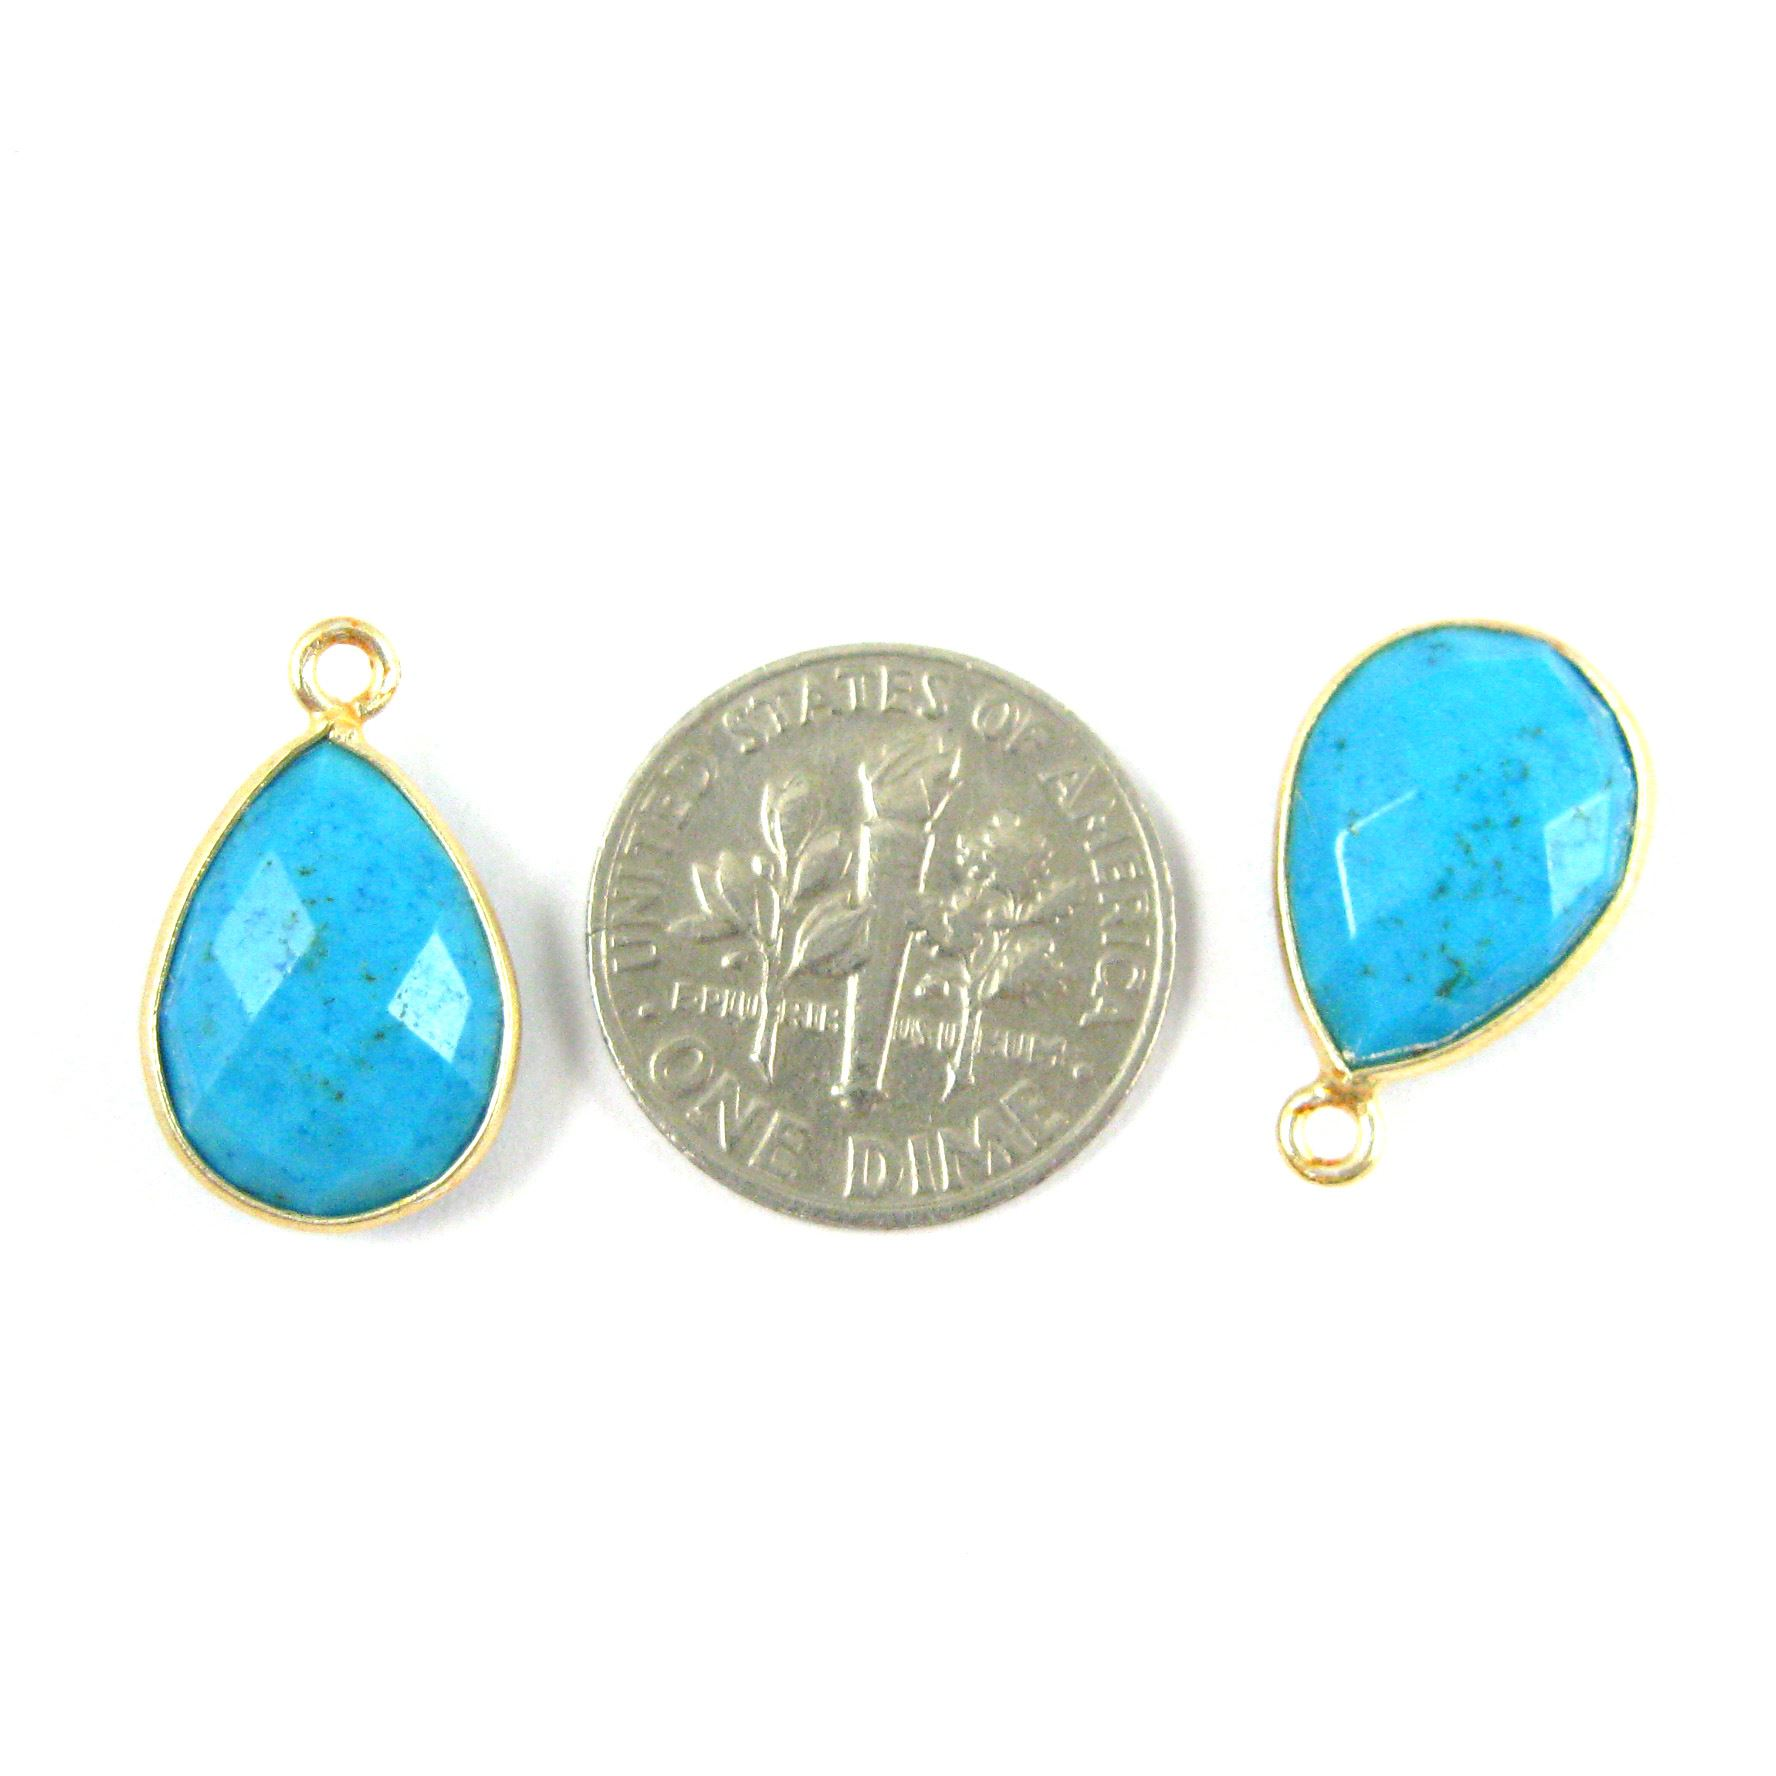 Bezel Gemstone Pendant - 10x14mm Faceted Small Teardop Shape -Turquoise (Sold per 2 pieces)